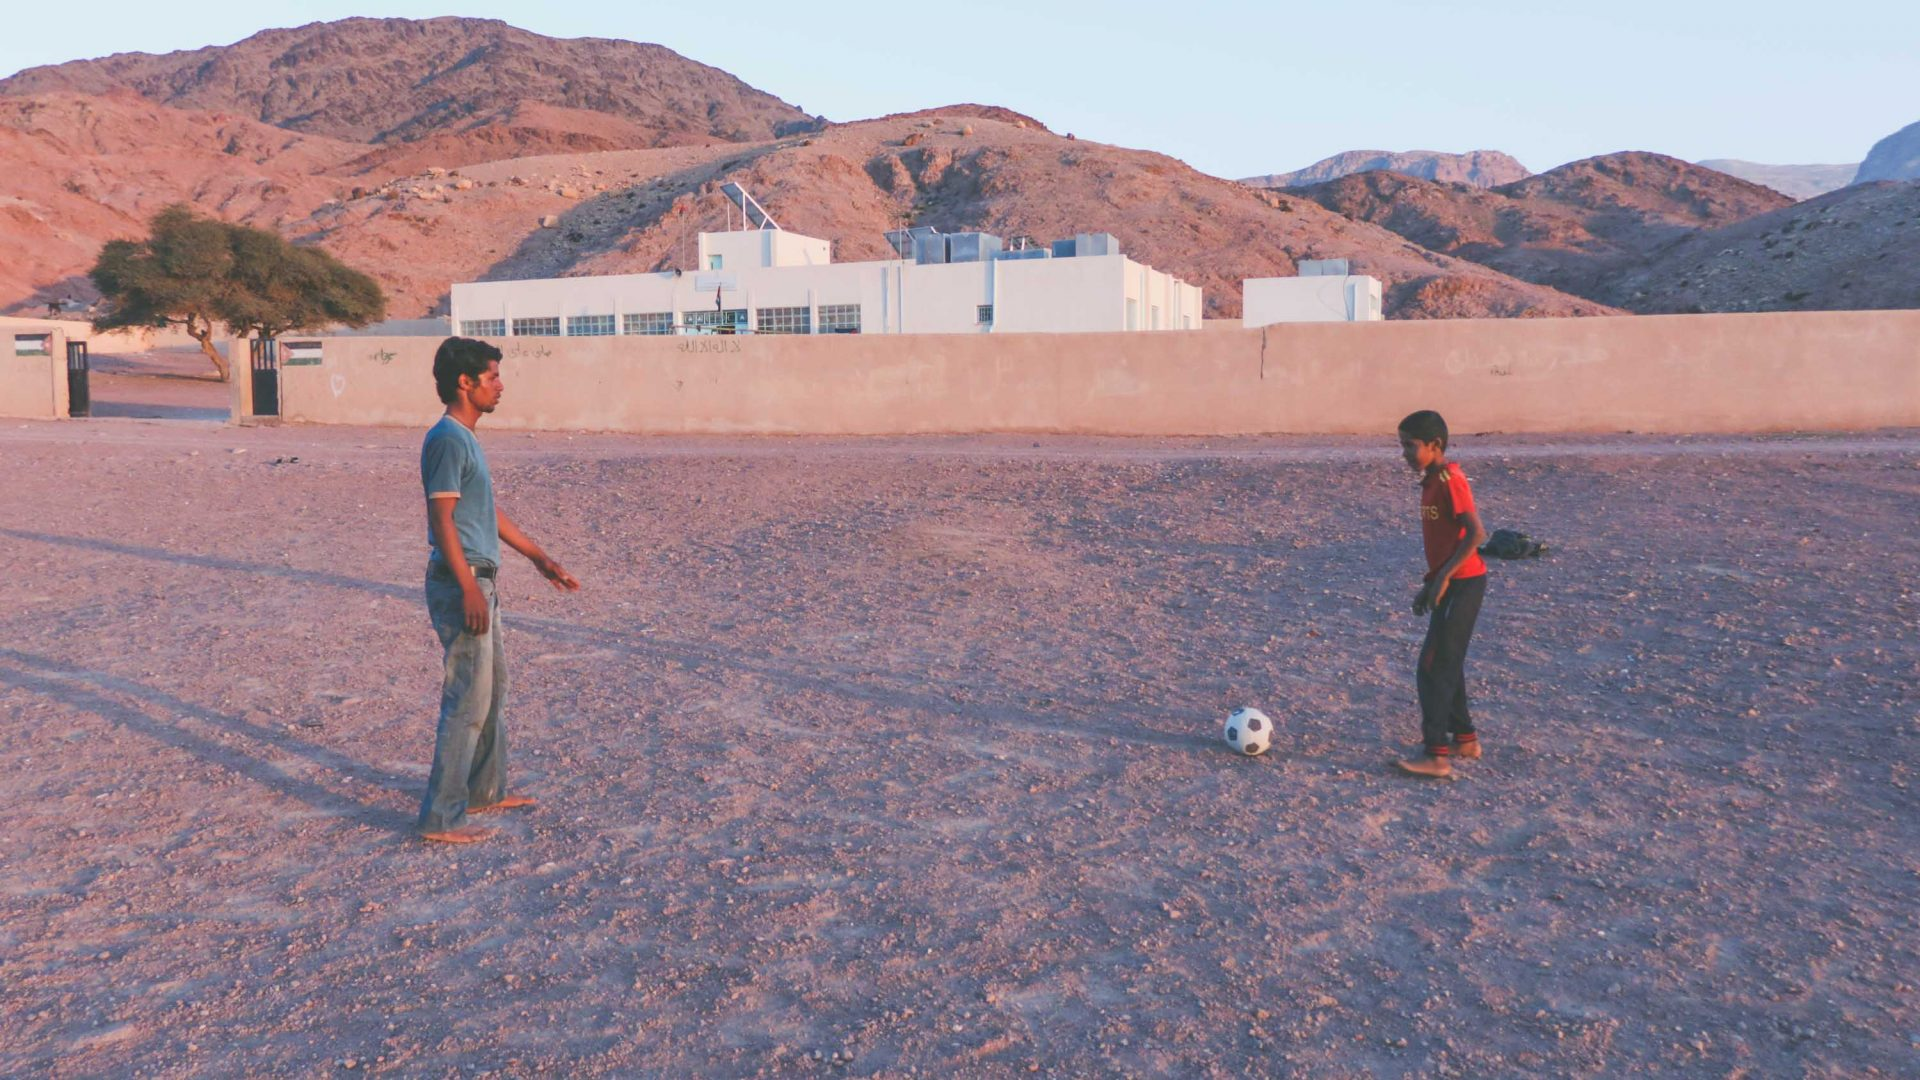 Local kids playing football in Wadi Feynan in southern Jordan.